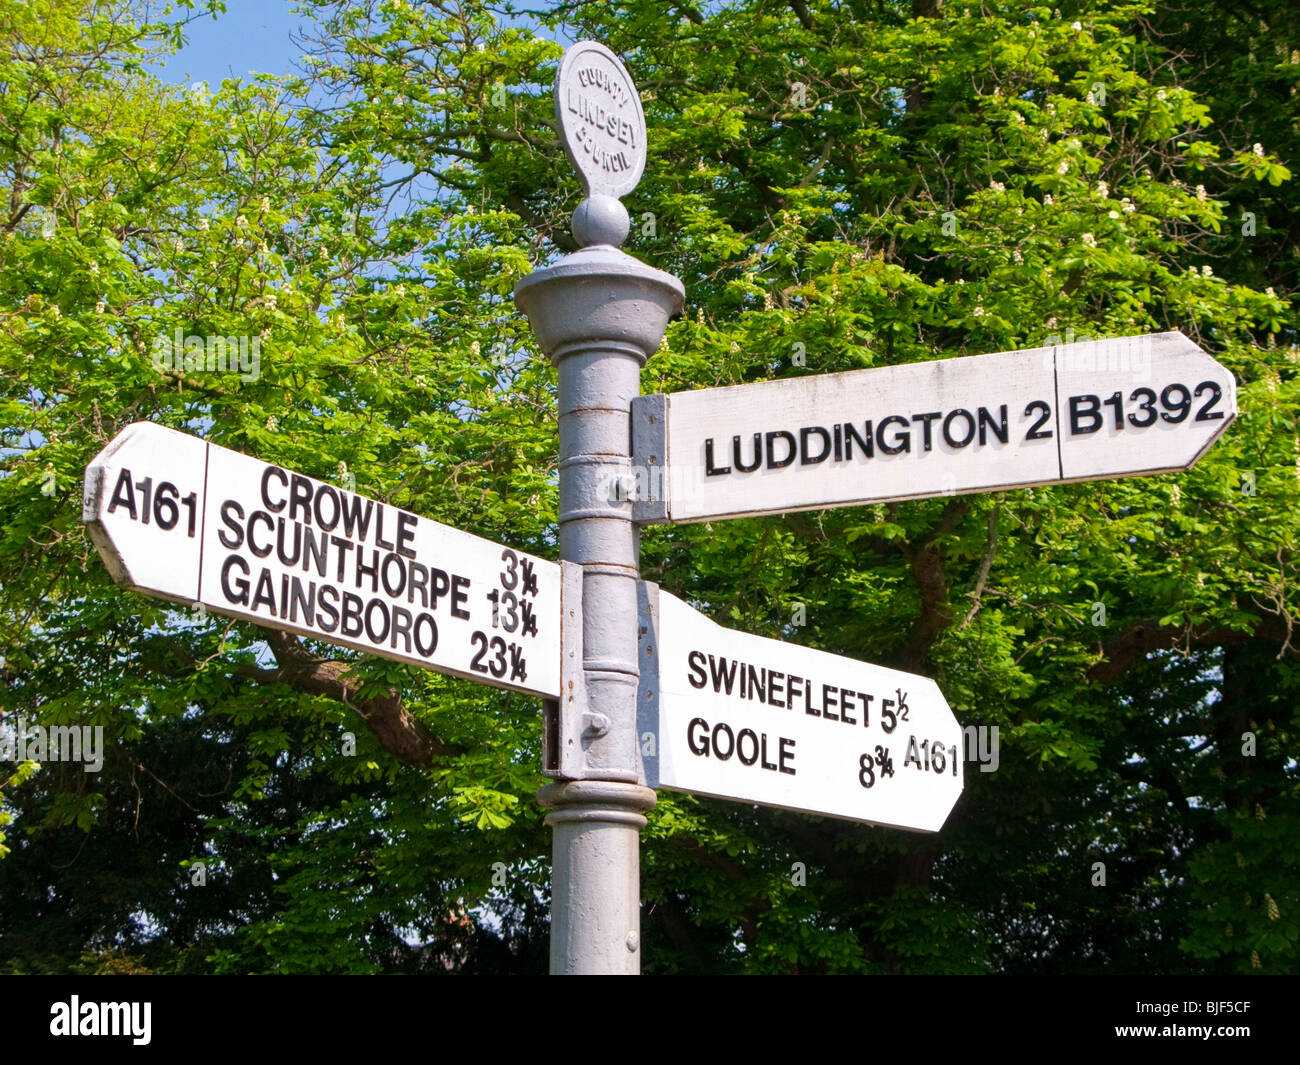 Historic Lindsey Council directional signpost on the Isle of Axholme, Eastoft, North Lincolnshire UK - Stock Image